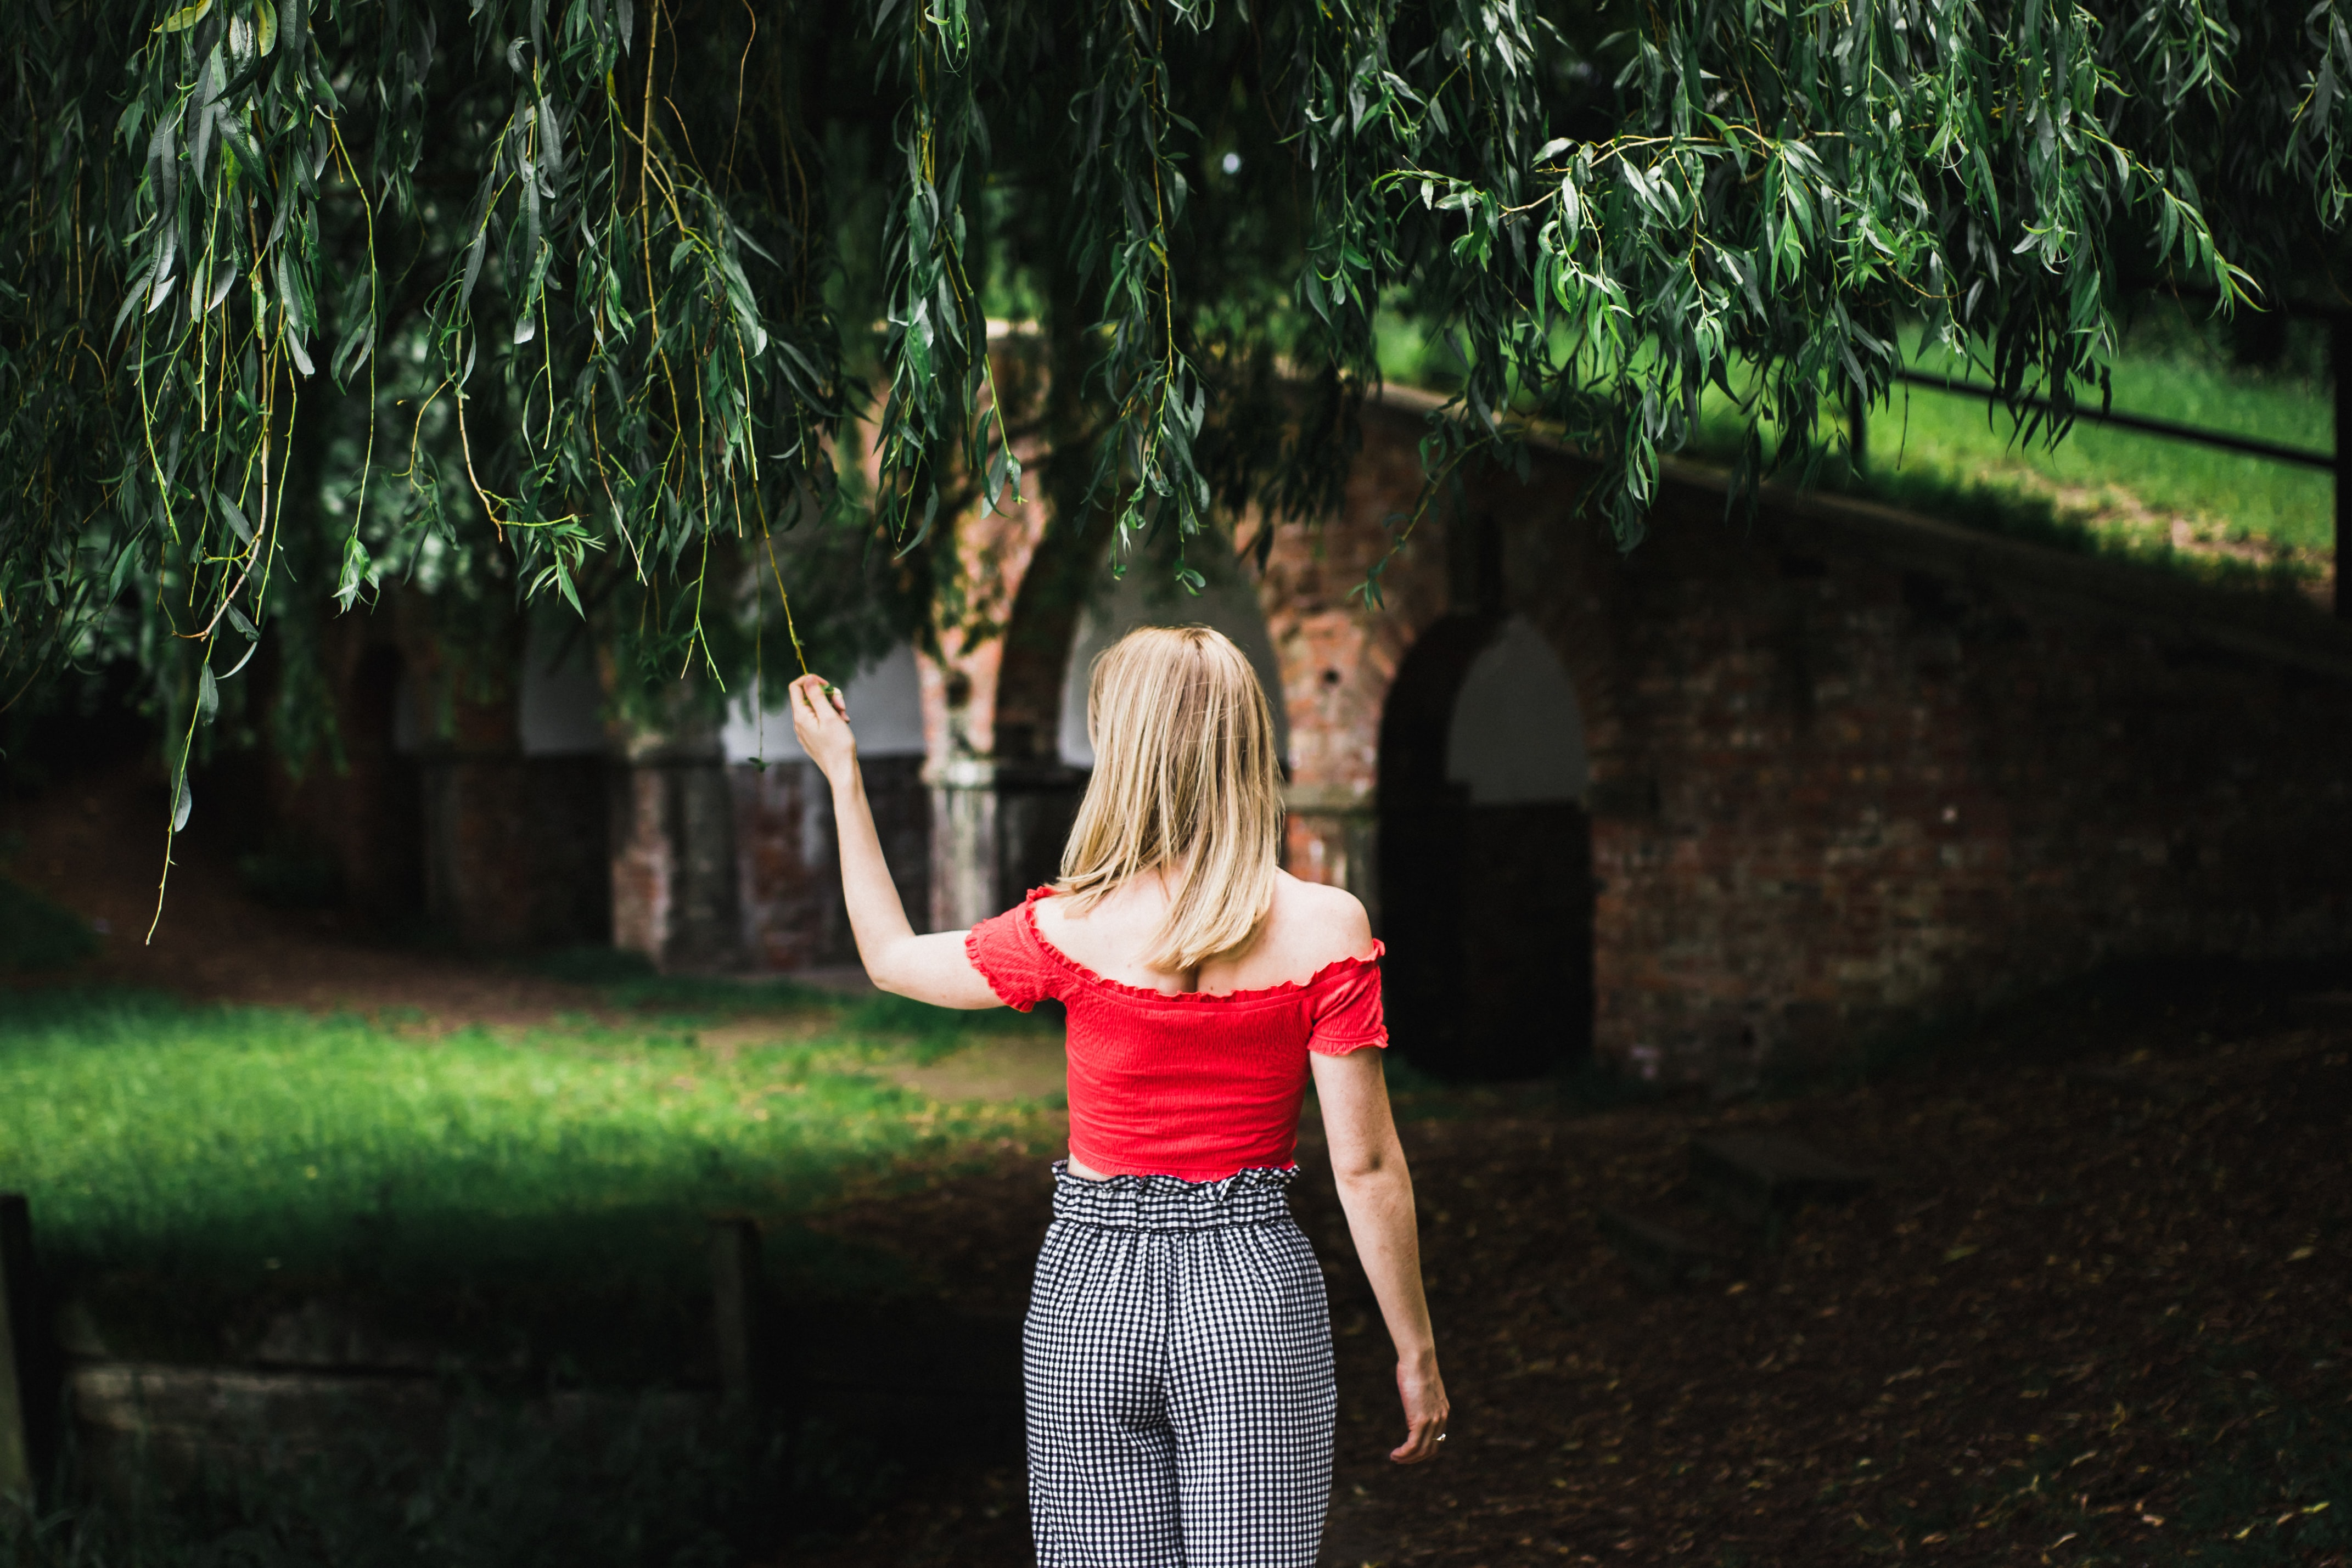 woman standing grabbing green tree leaf wearing red t-shirt